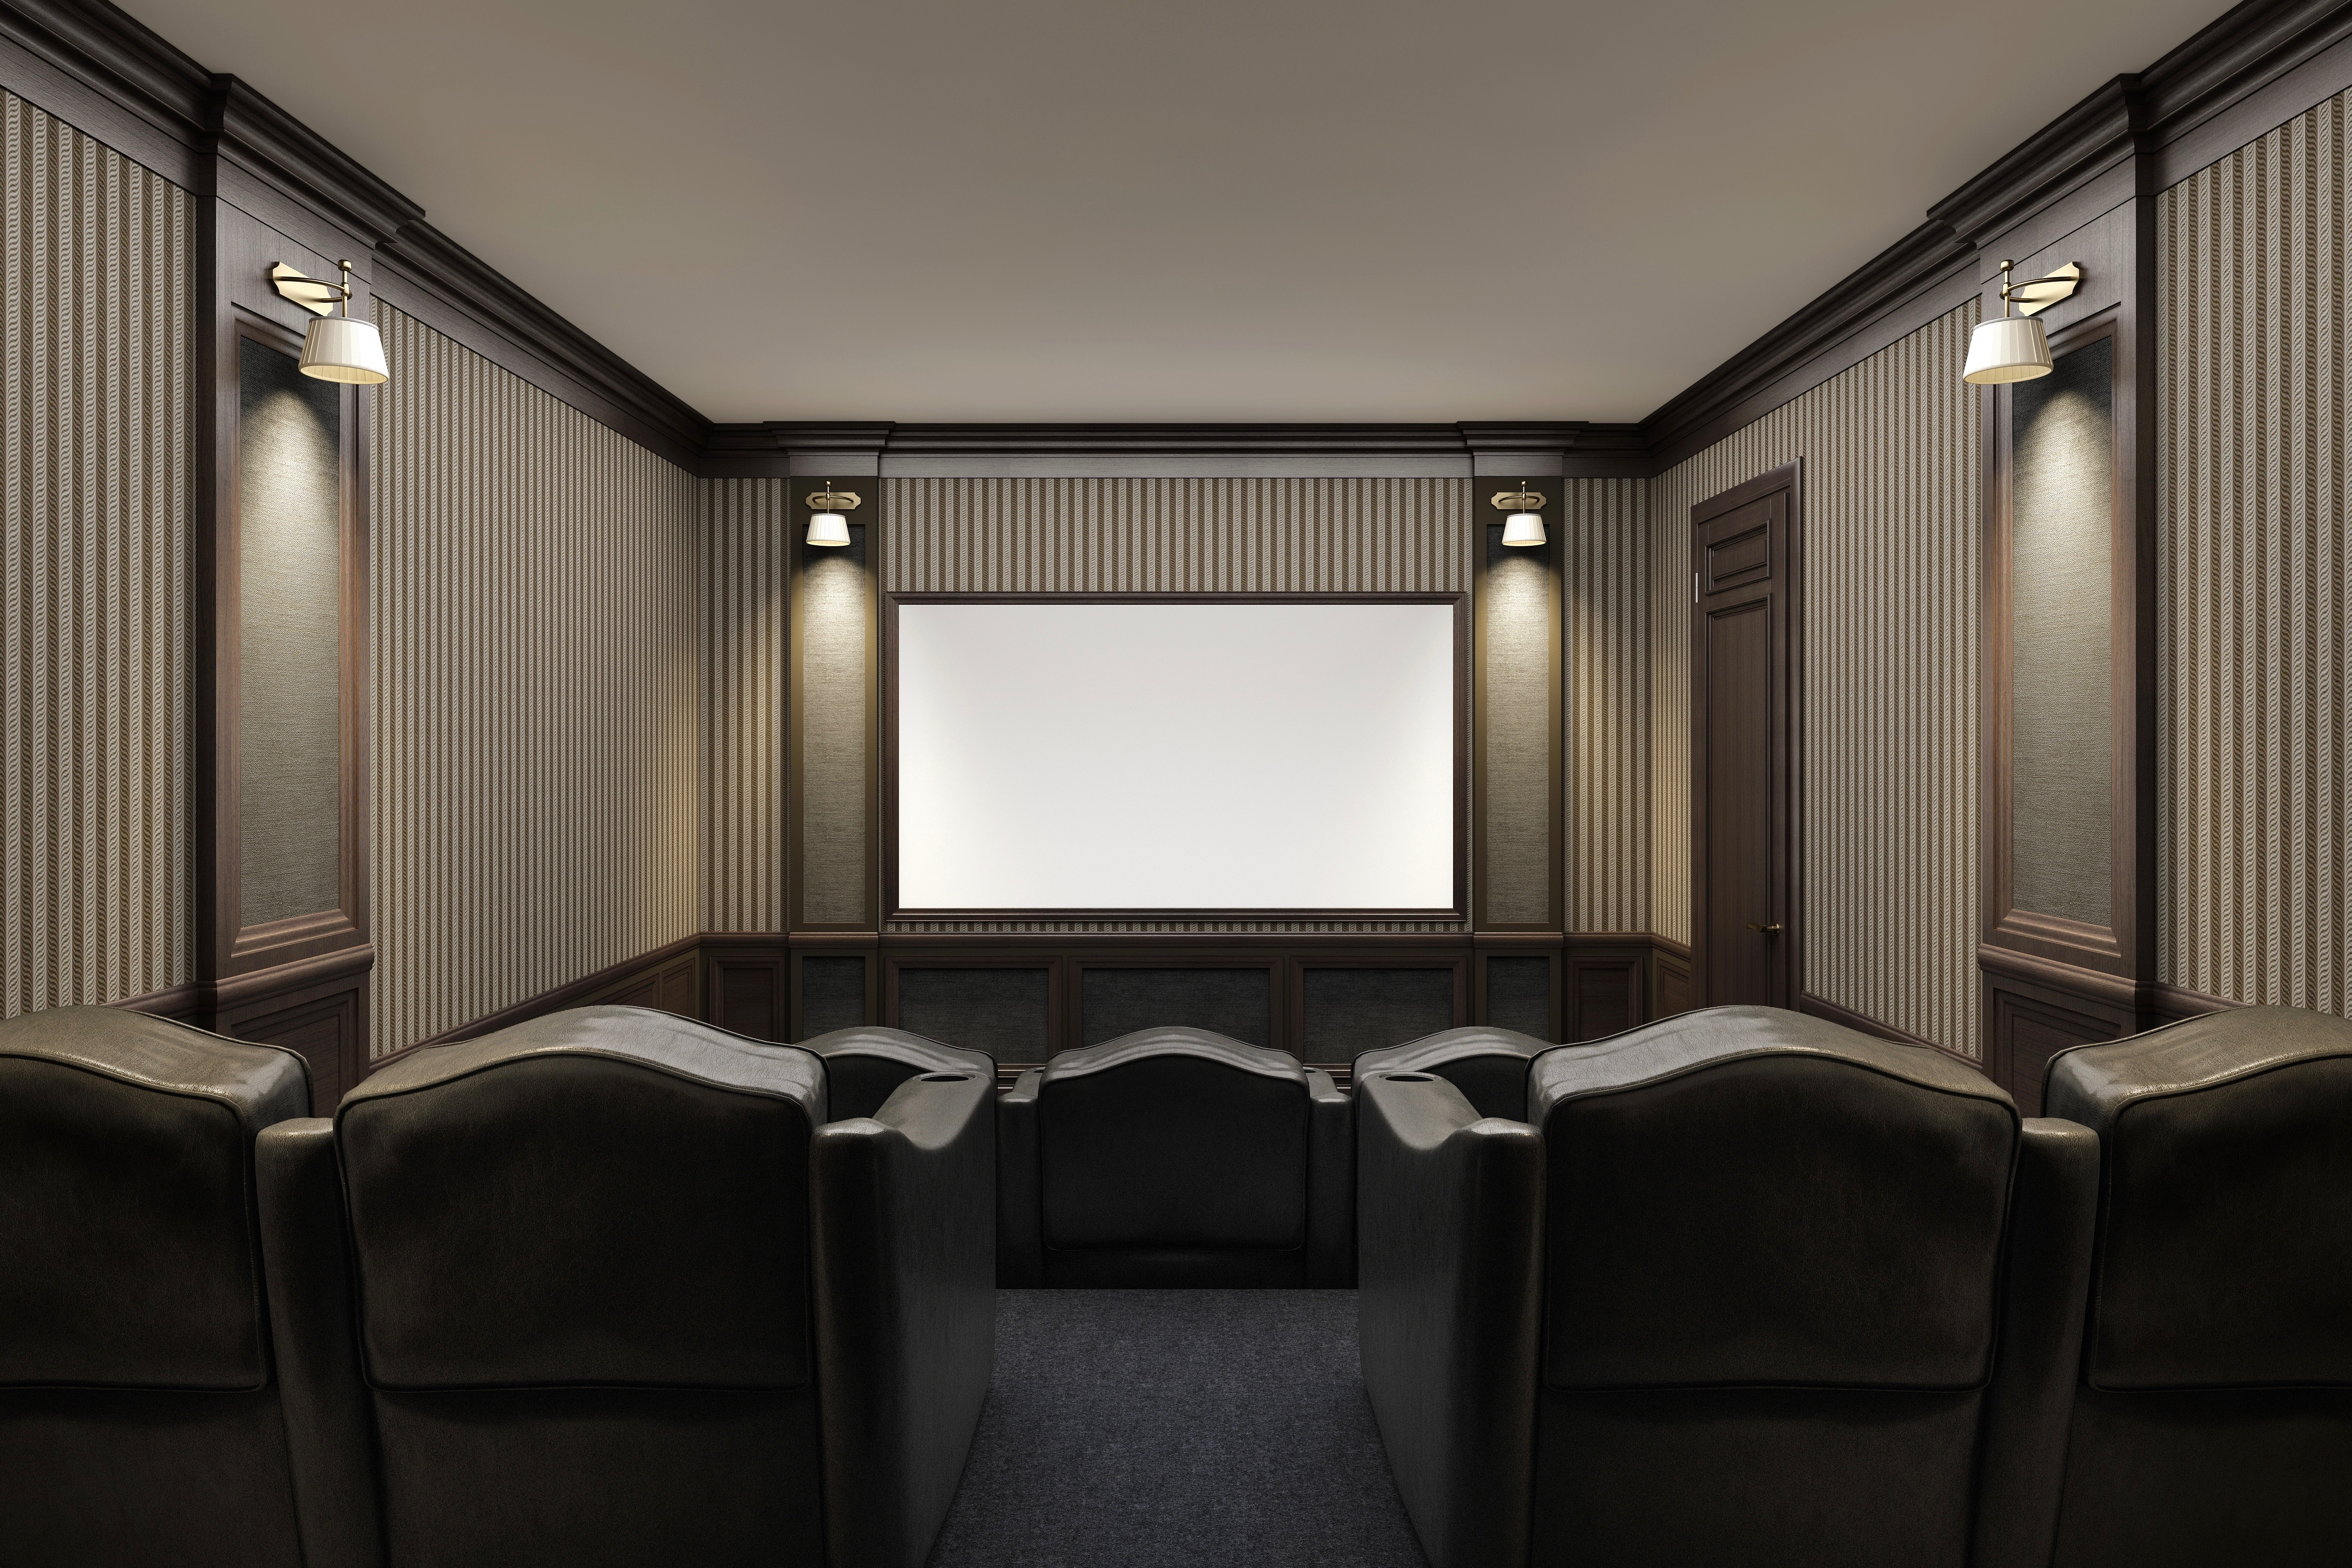 Deciding between a game room and a home theater can be a difficult decision, make it easier by checking out our pros and cons for each.